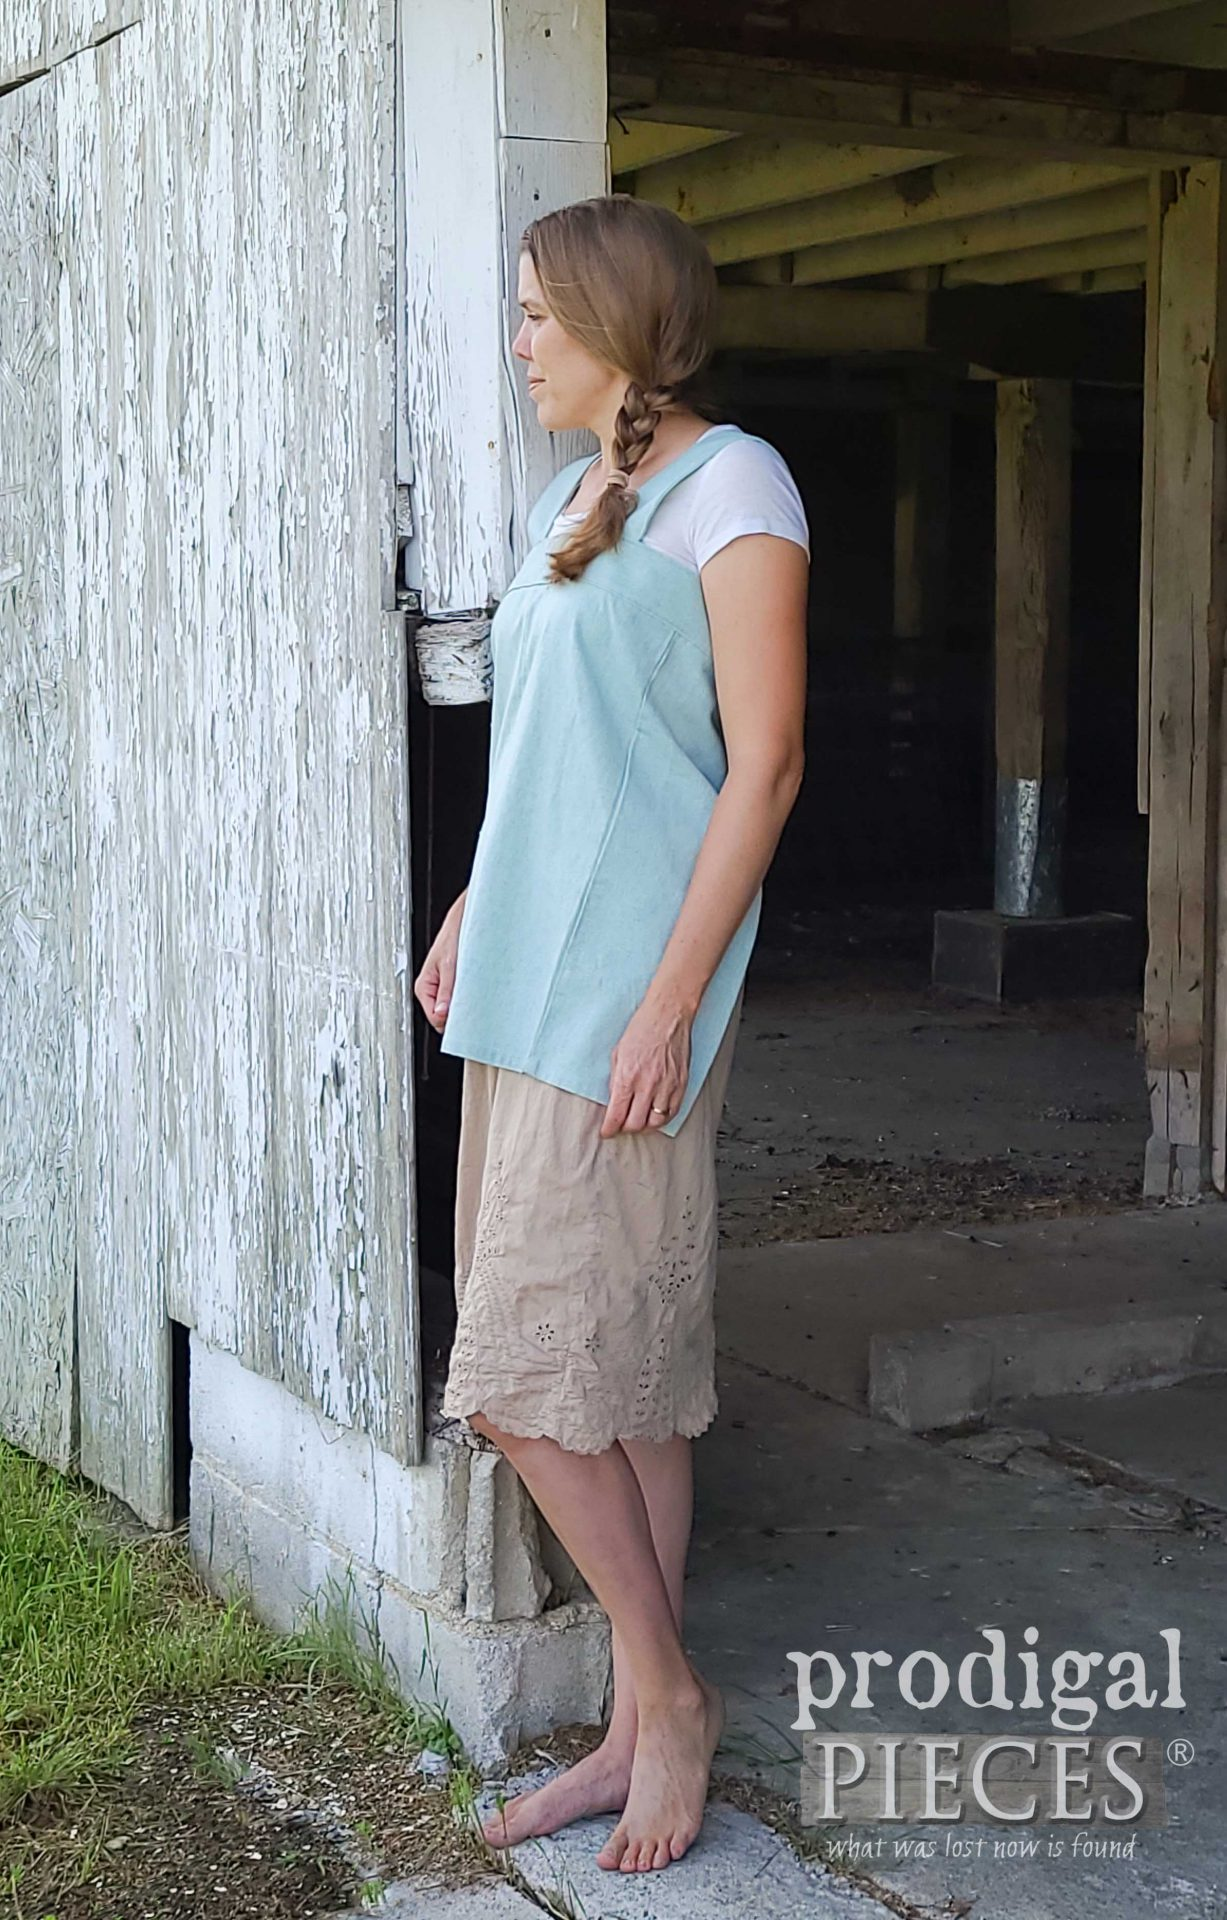 Larissa of Prodigal Pieces in her DIY Linen Smock from Refashioned Pants | prodigalpieces.com #prodigalpieces #diy #refashion #sewing #fashion #women #style #farmhouse